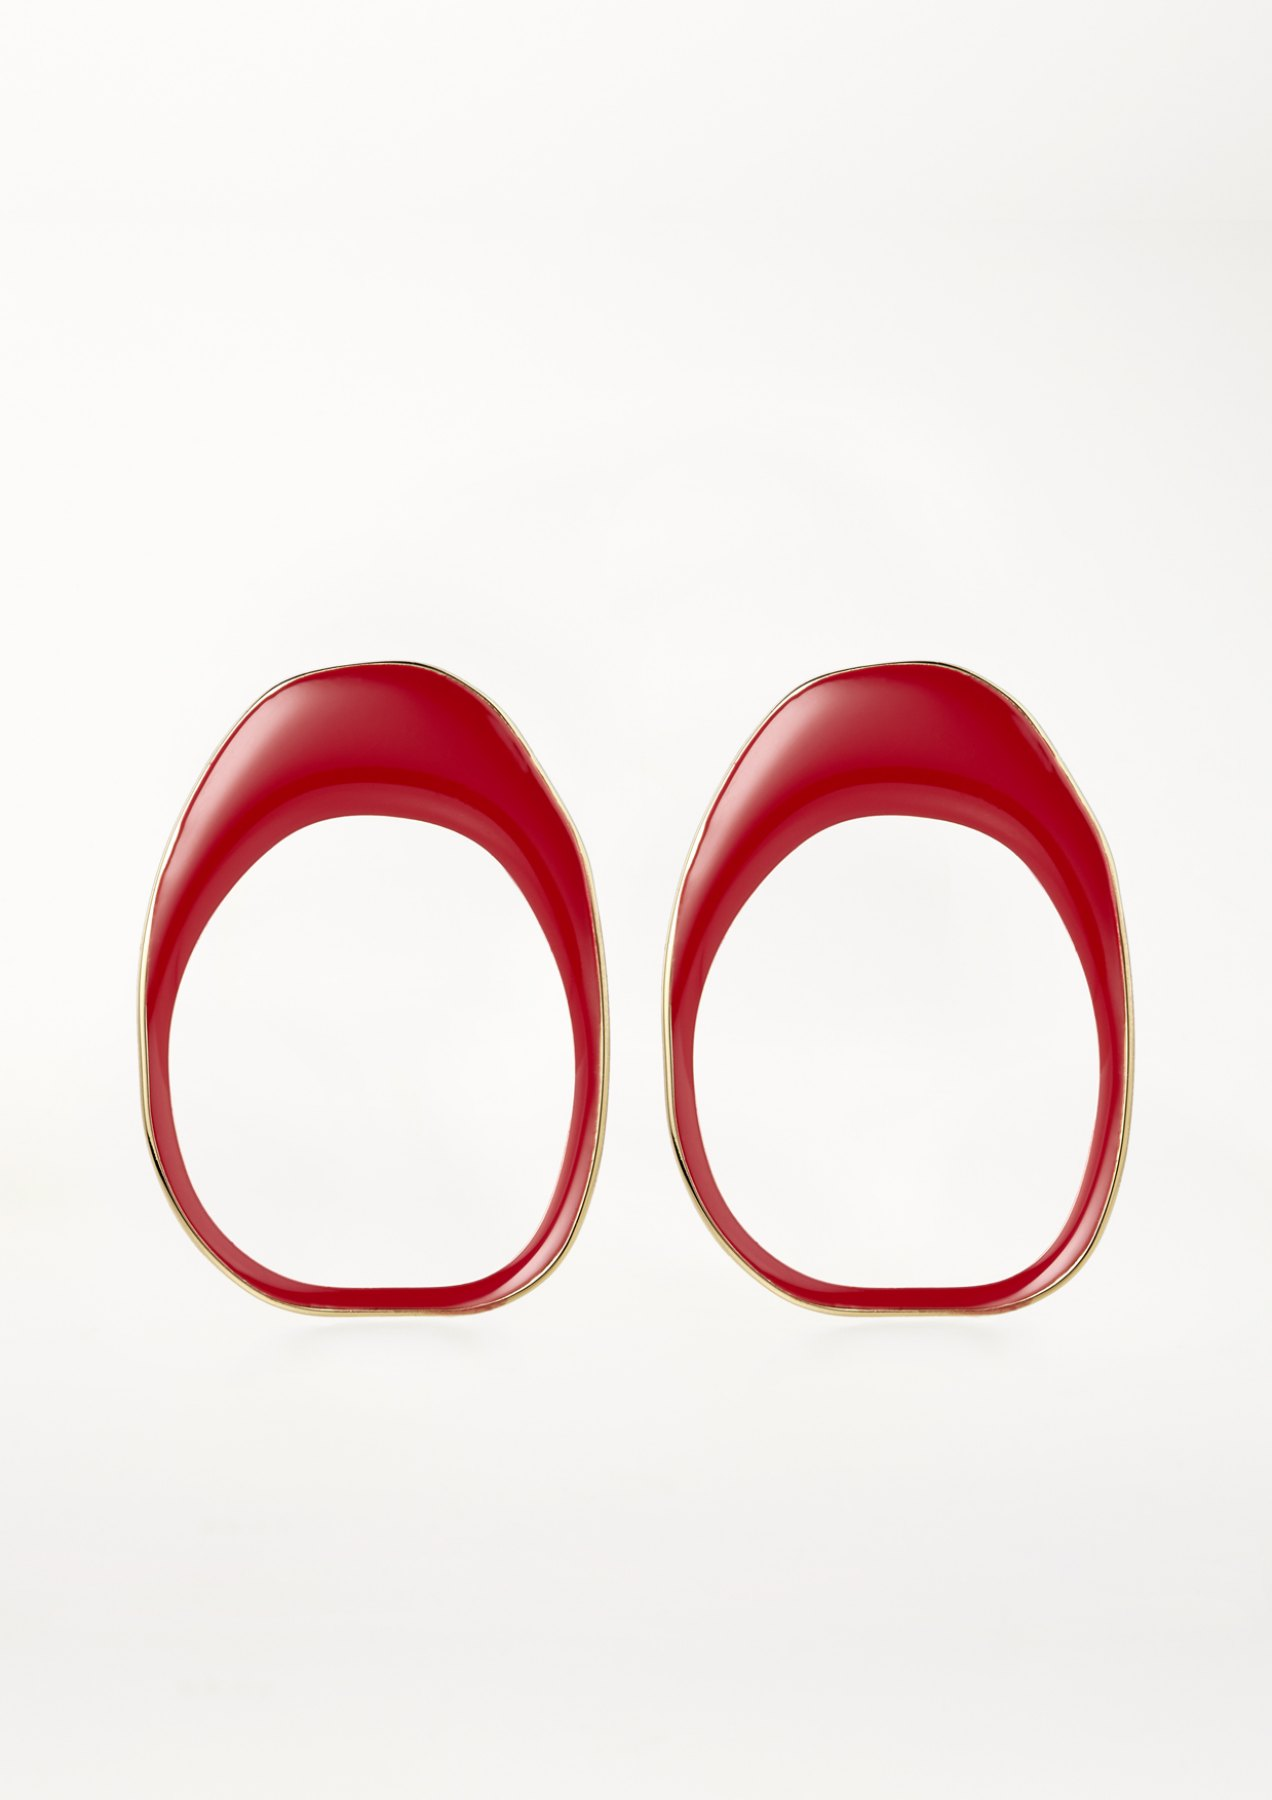 xenia bous jewellery coloured stone 02 earrings feuerrot red